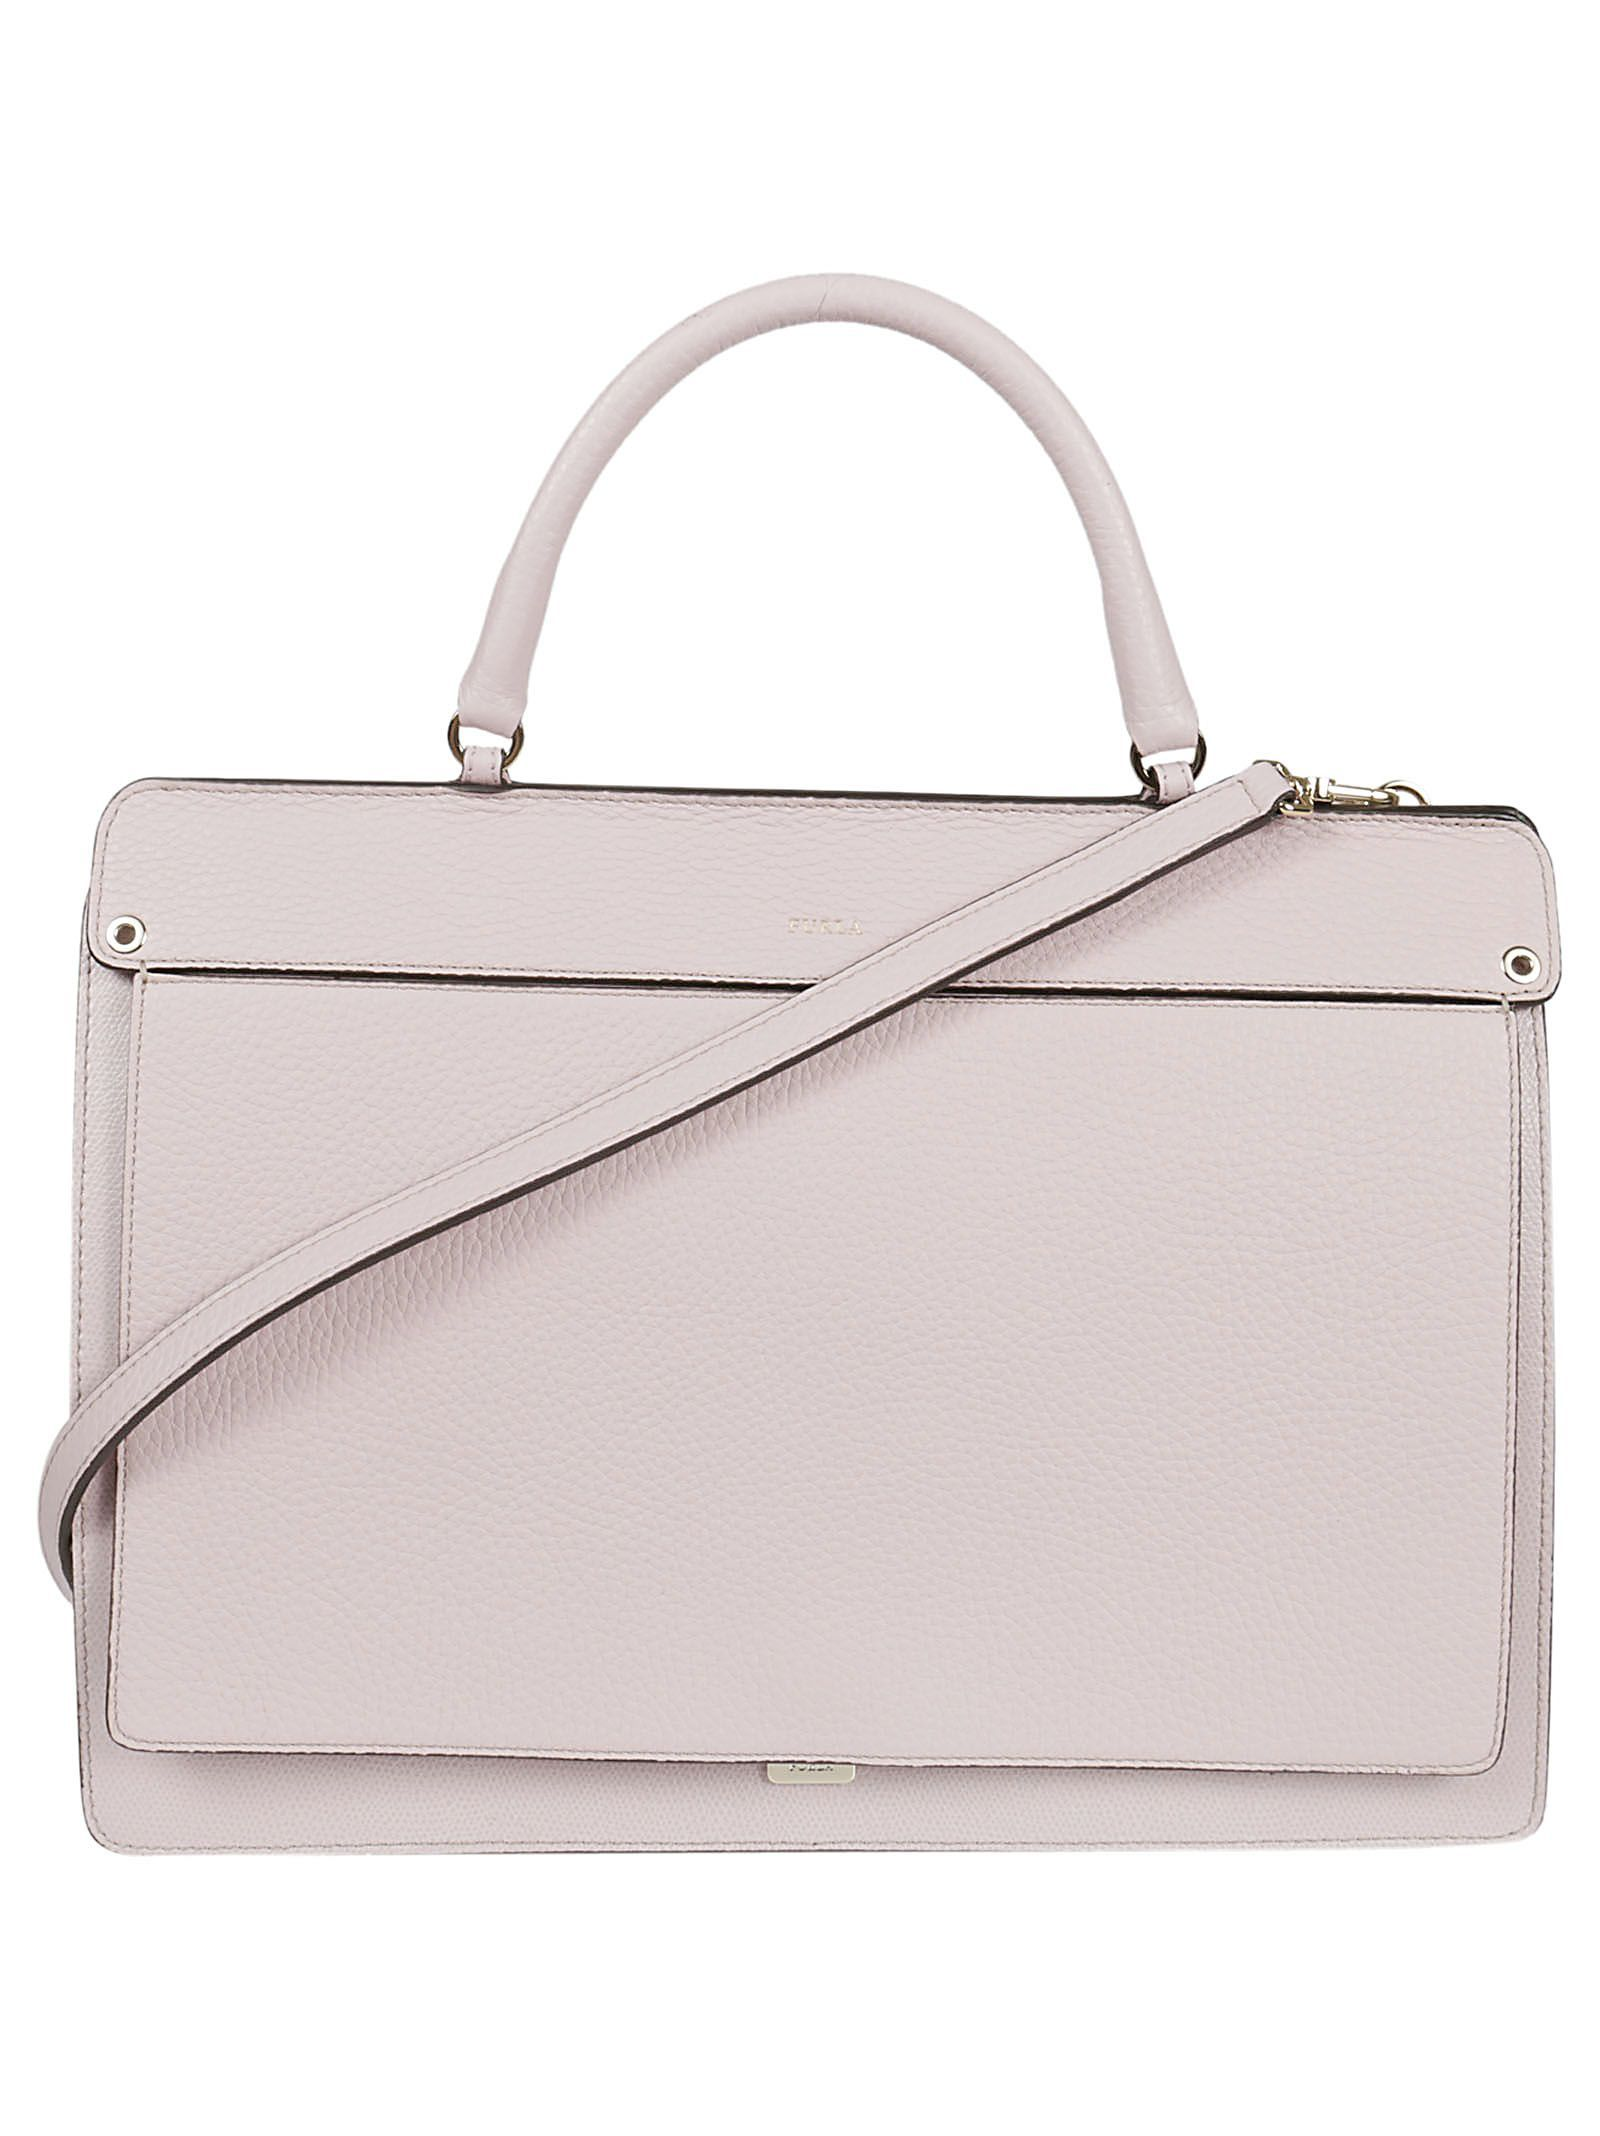 FURLA LIKE MINI SHOULDER BAG.  furla  bags  shoulder bags  hand bags ... de117a30975a9